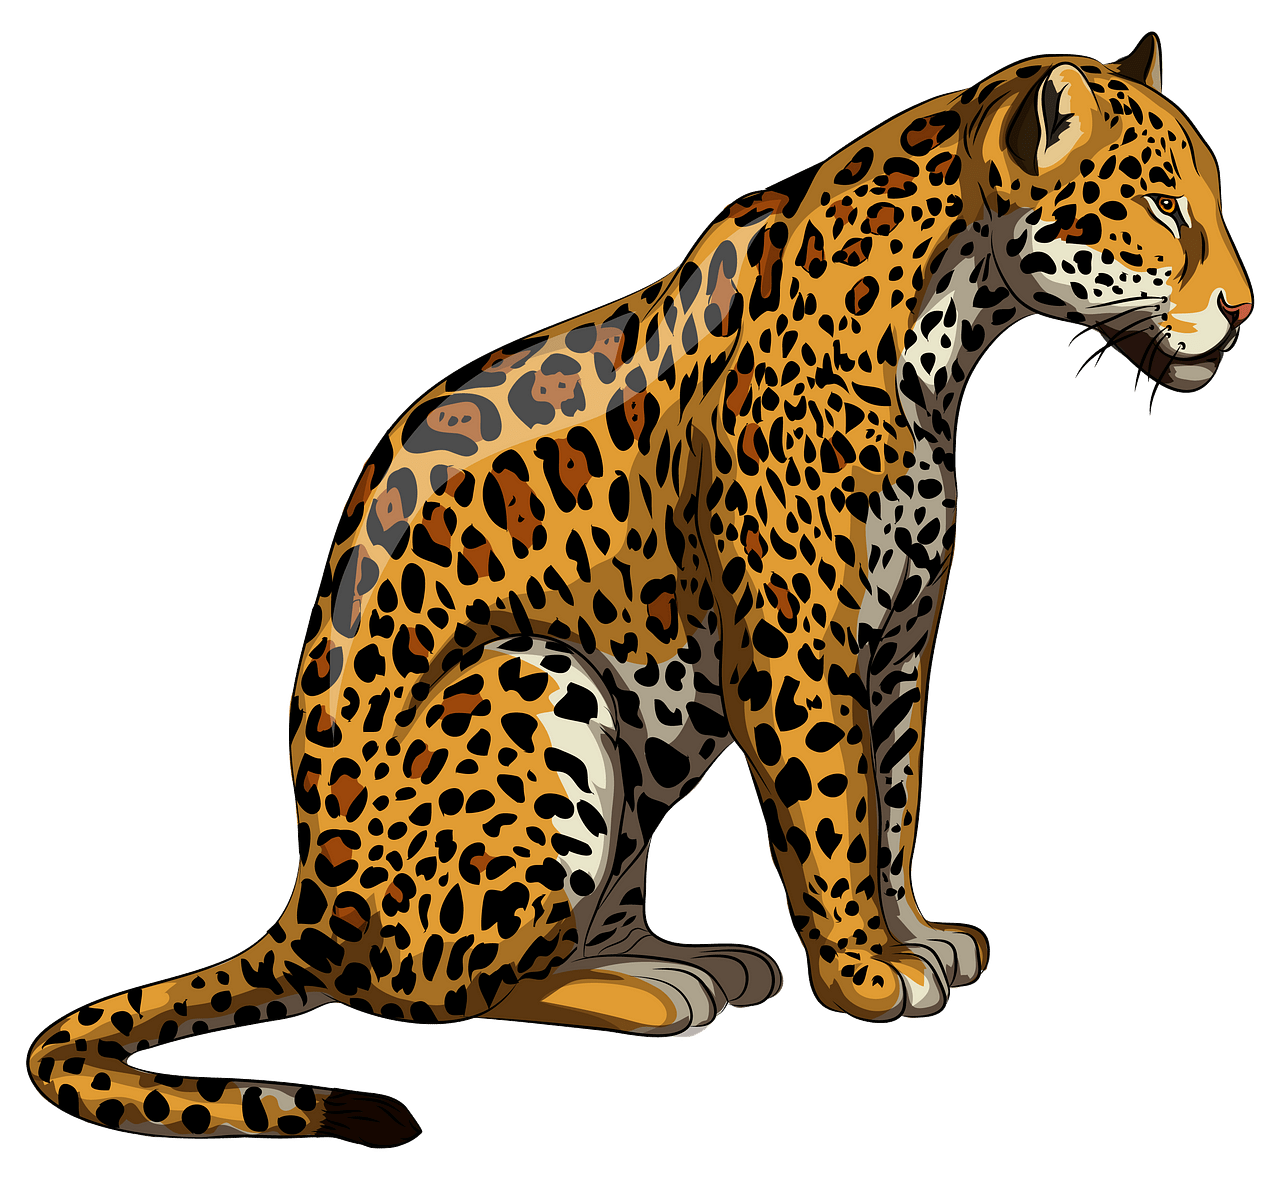 banner royalty free stock Free download creazilla . Jaguar clipart